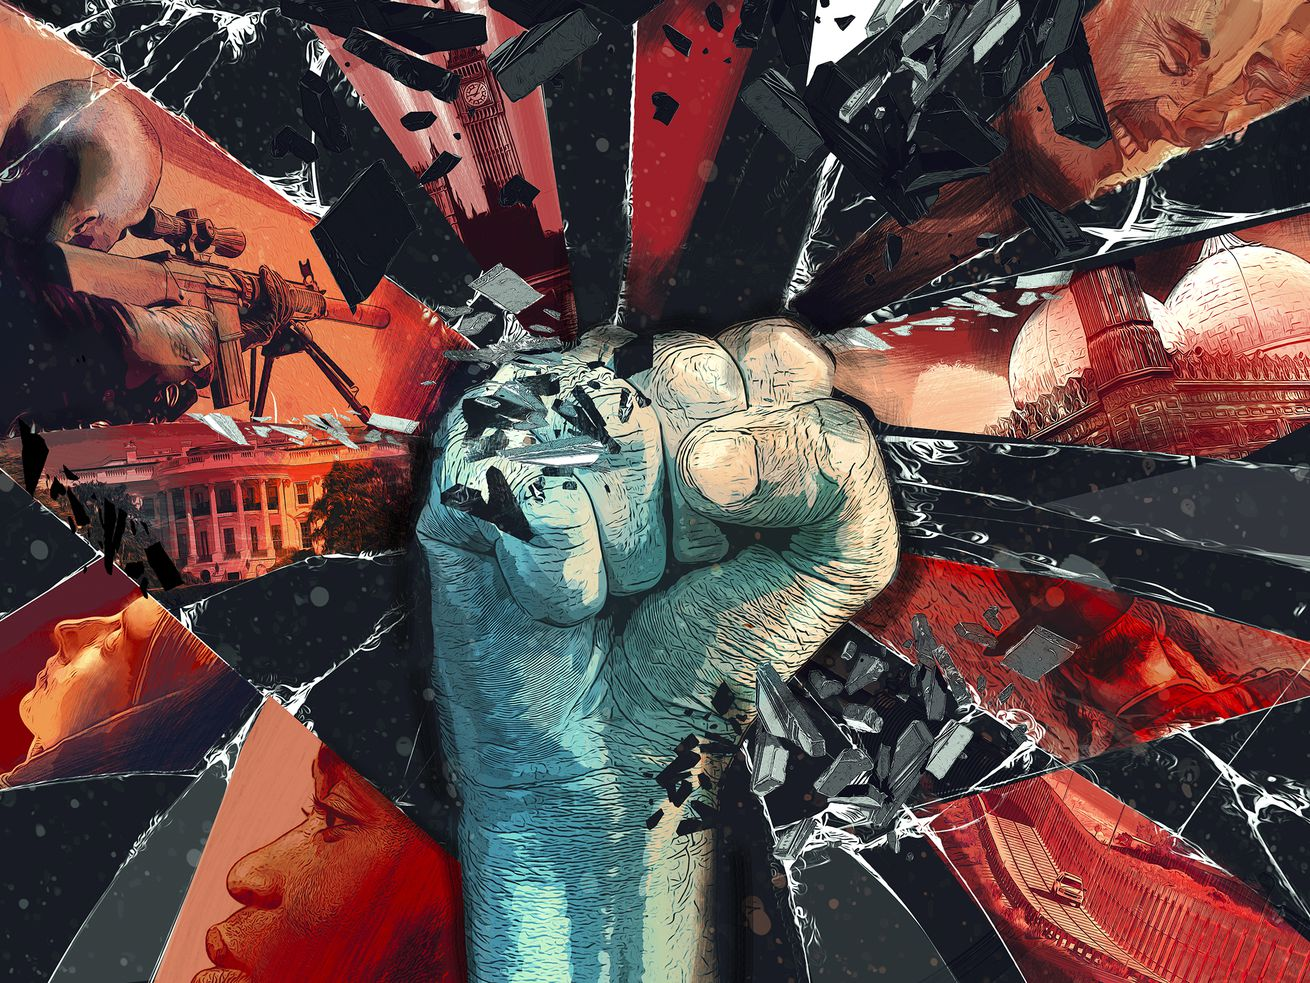 A fist shatters a tableau of imagery, including a mosque, a sniper, and the White House.